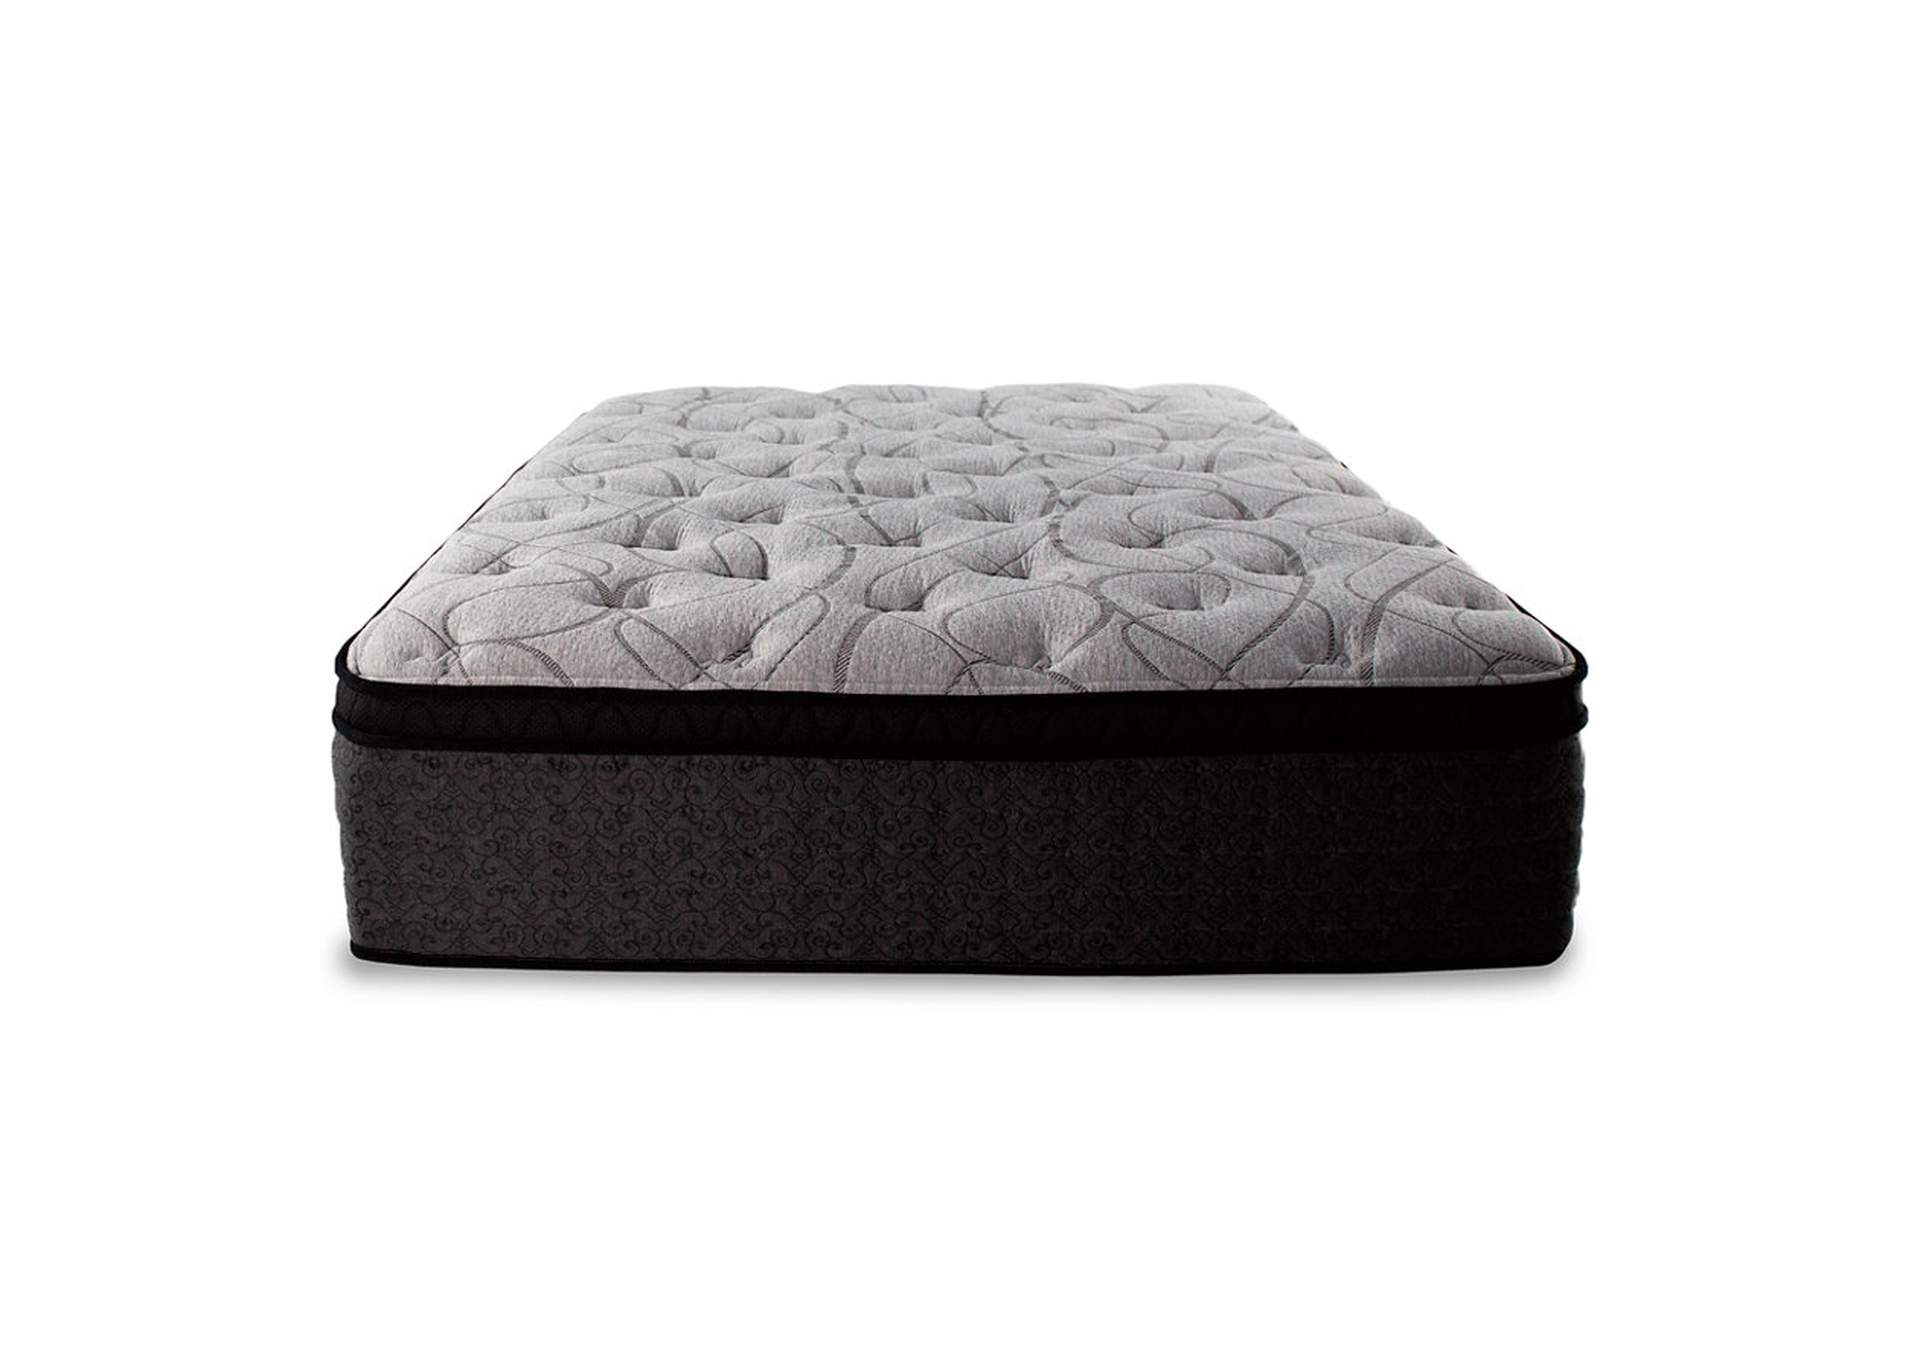 Mt Dana Euro Top Queen Mattress w/Foundation,Sierra Sleep by Ashley